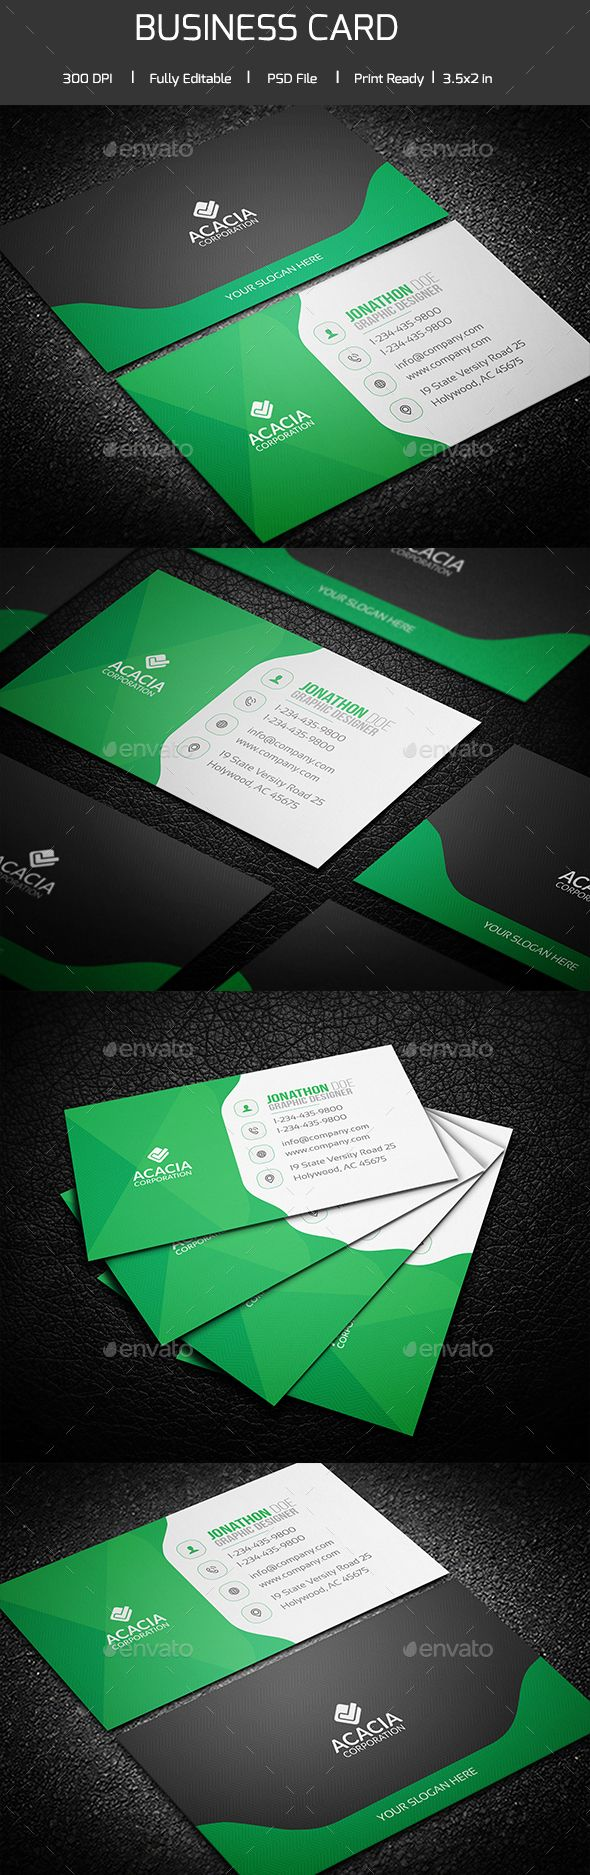 1428 Best Cool Business Cards On Pinterest Images On Pinterest